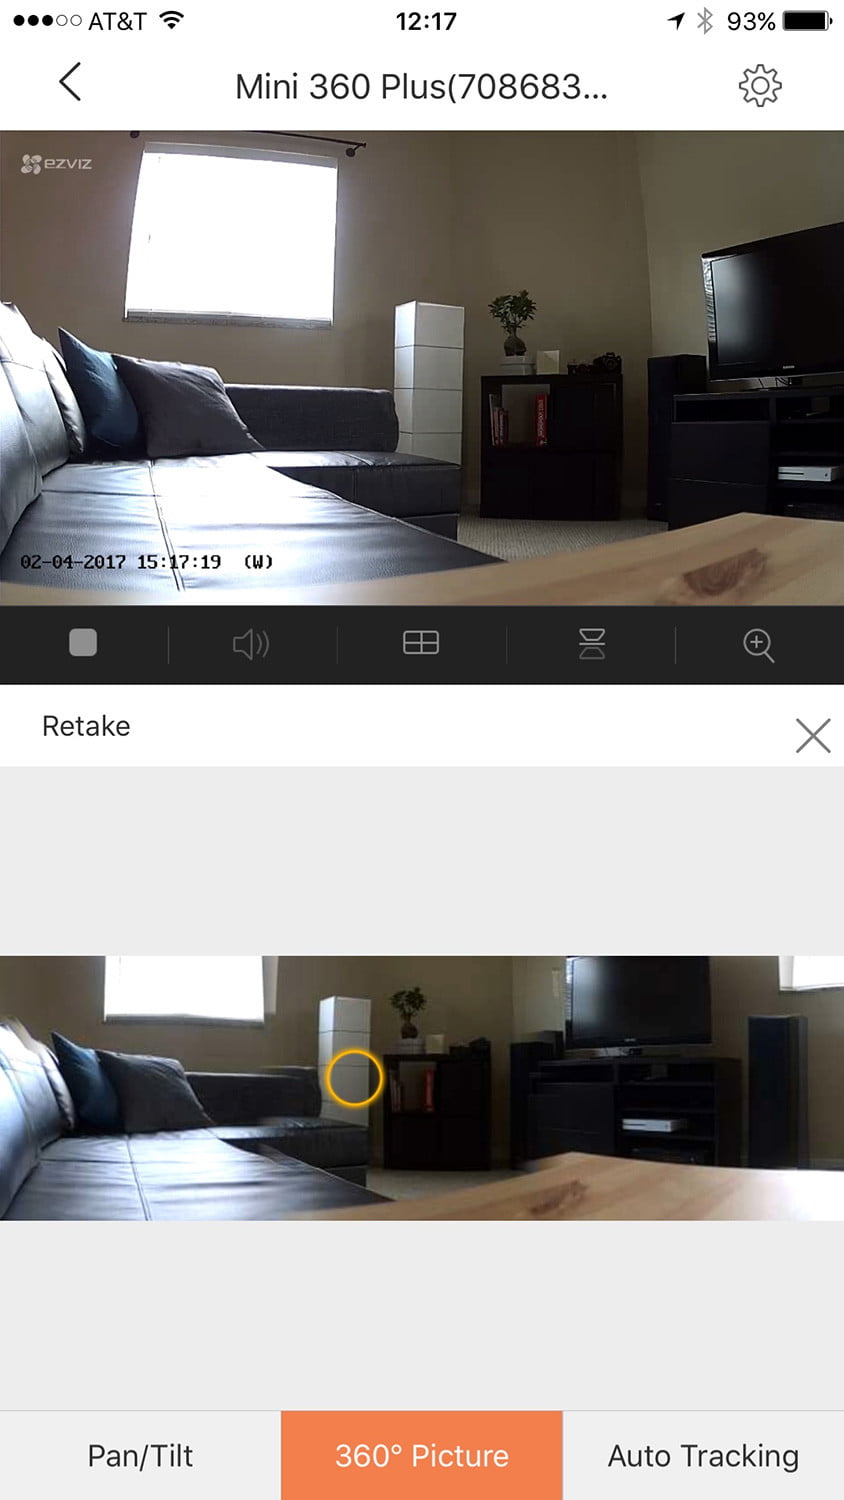 mini 360 plus cam a new spin on home security review digital trends. Black Bedroom Furniture Sets. Home Design Ideas